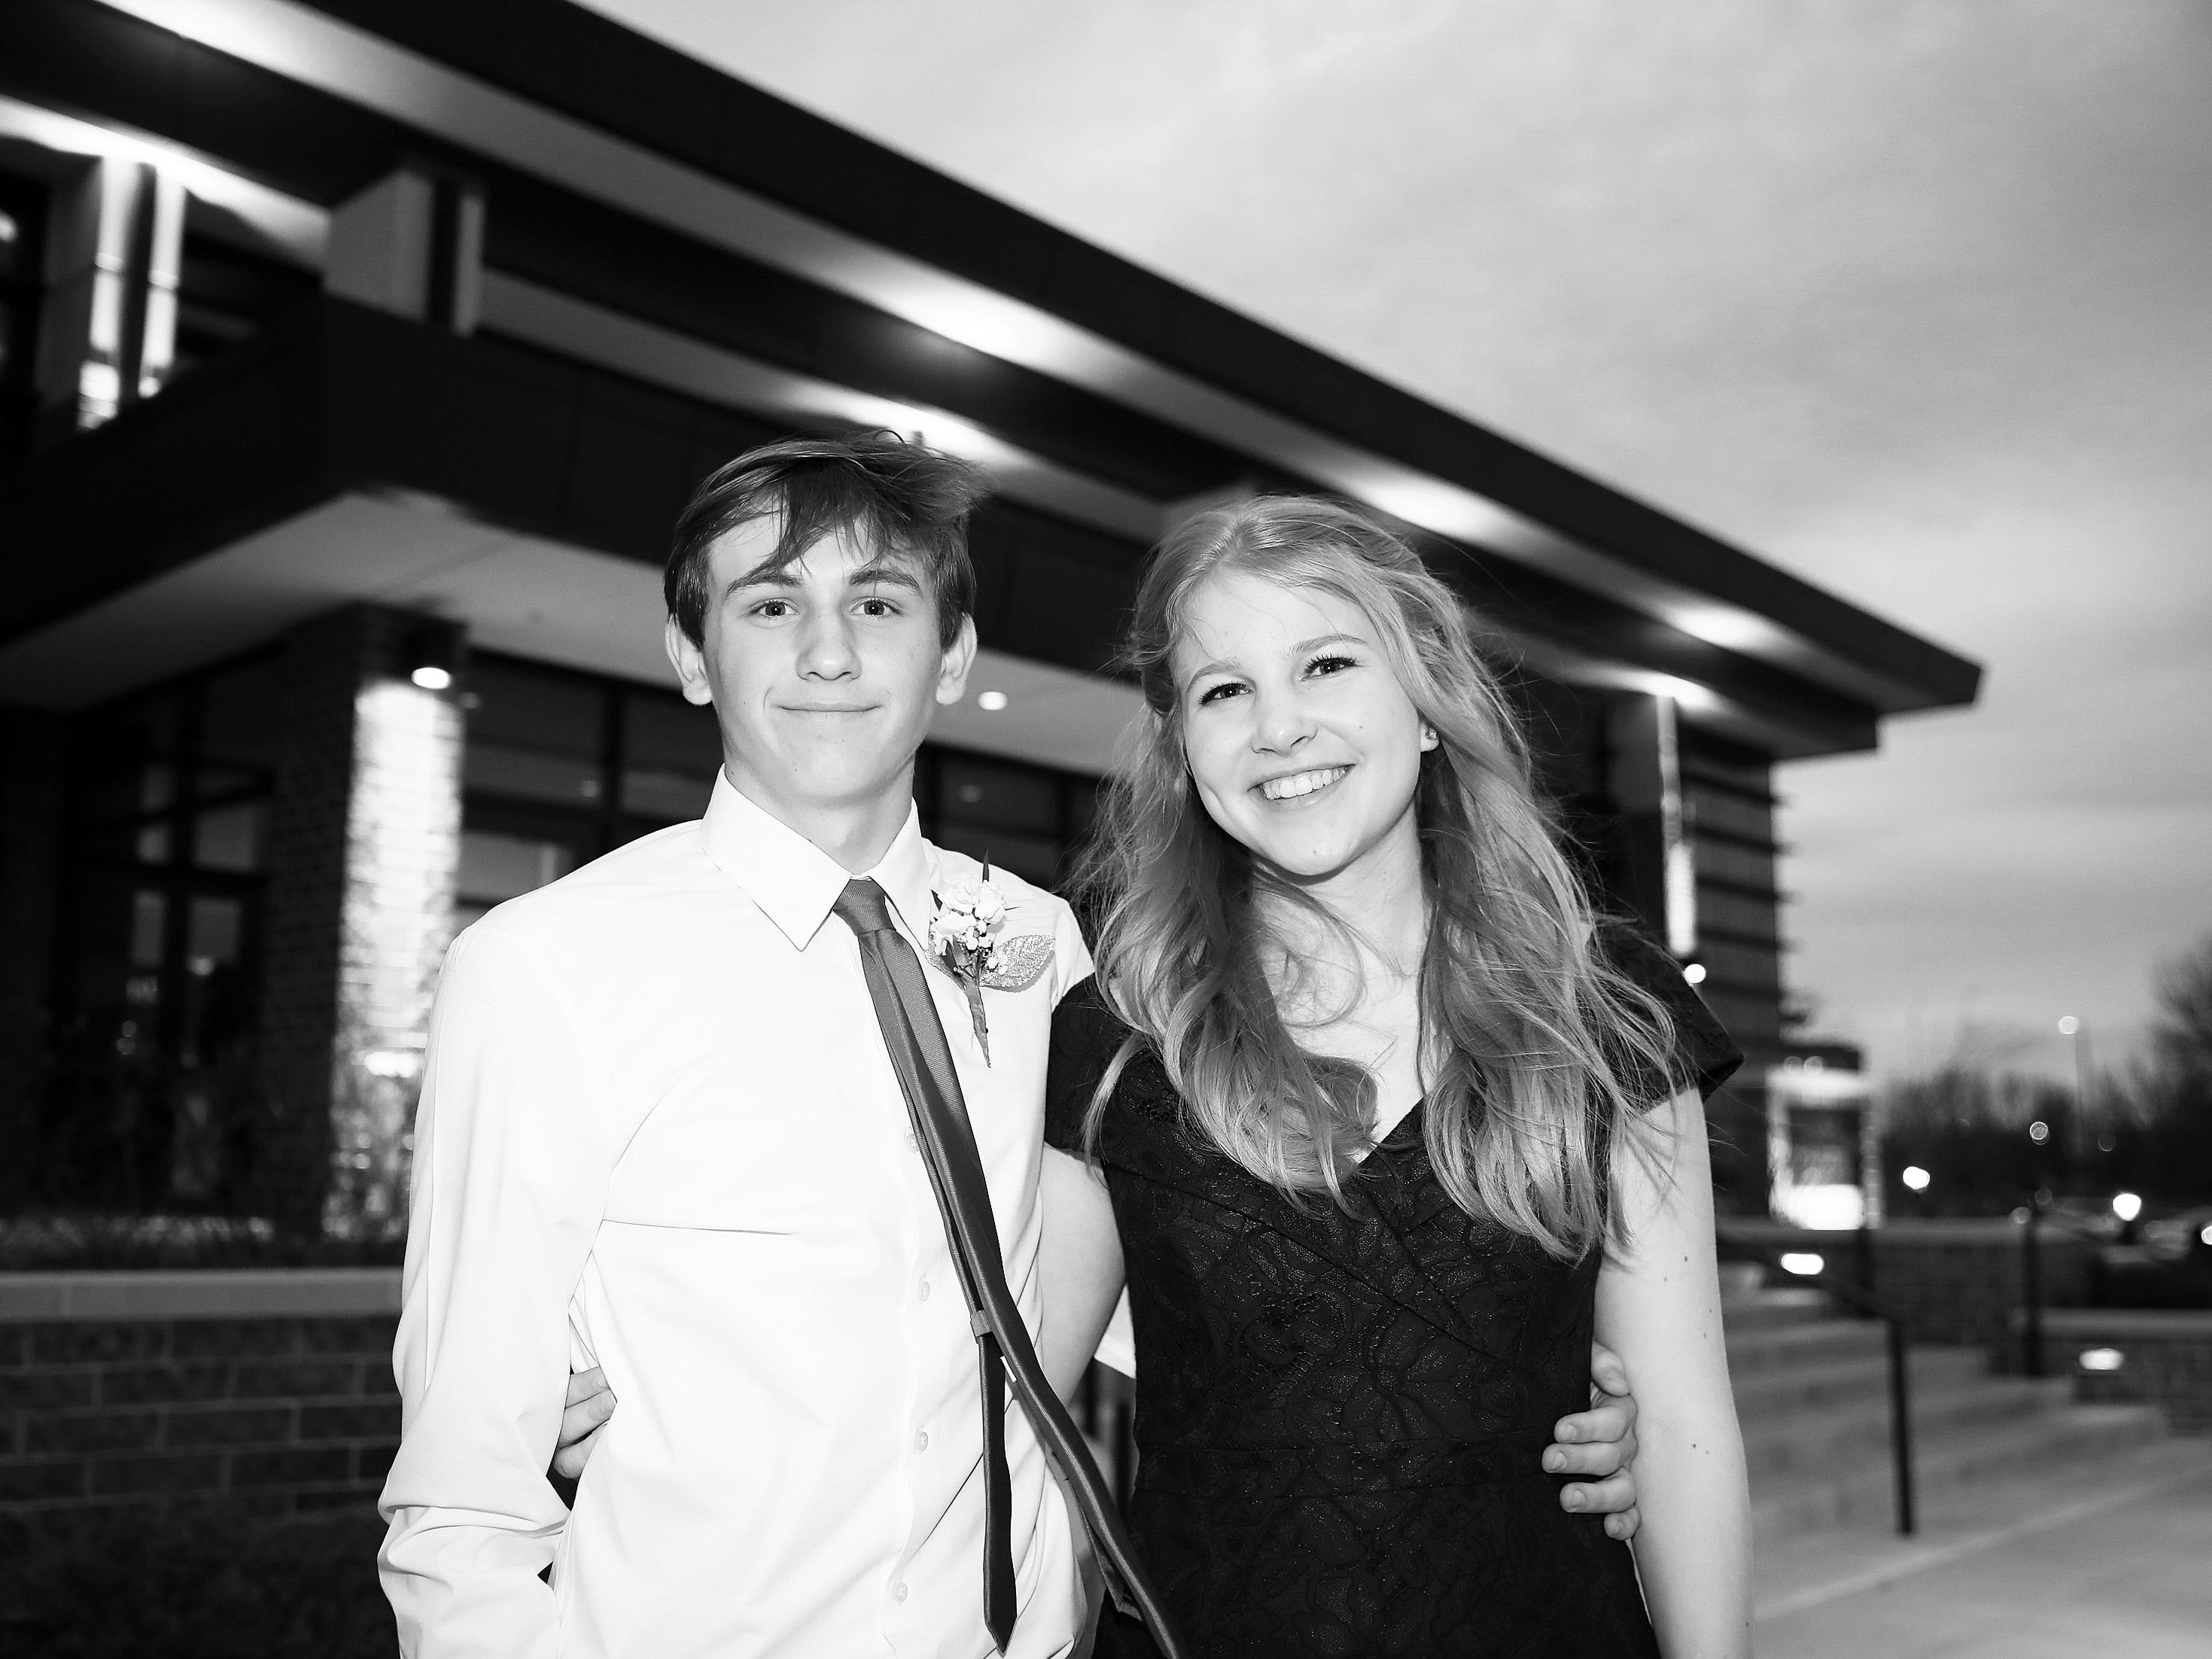 Junior Drew Pietig and sophomore Audra Wilkinson arrive at the Waukee High School Prom at the Ron Pearson Center in West Des Moines on Saturday, April 6, 2019.